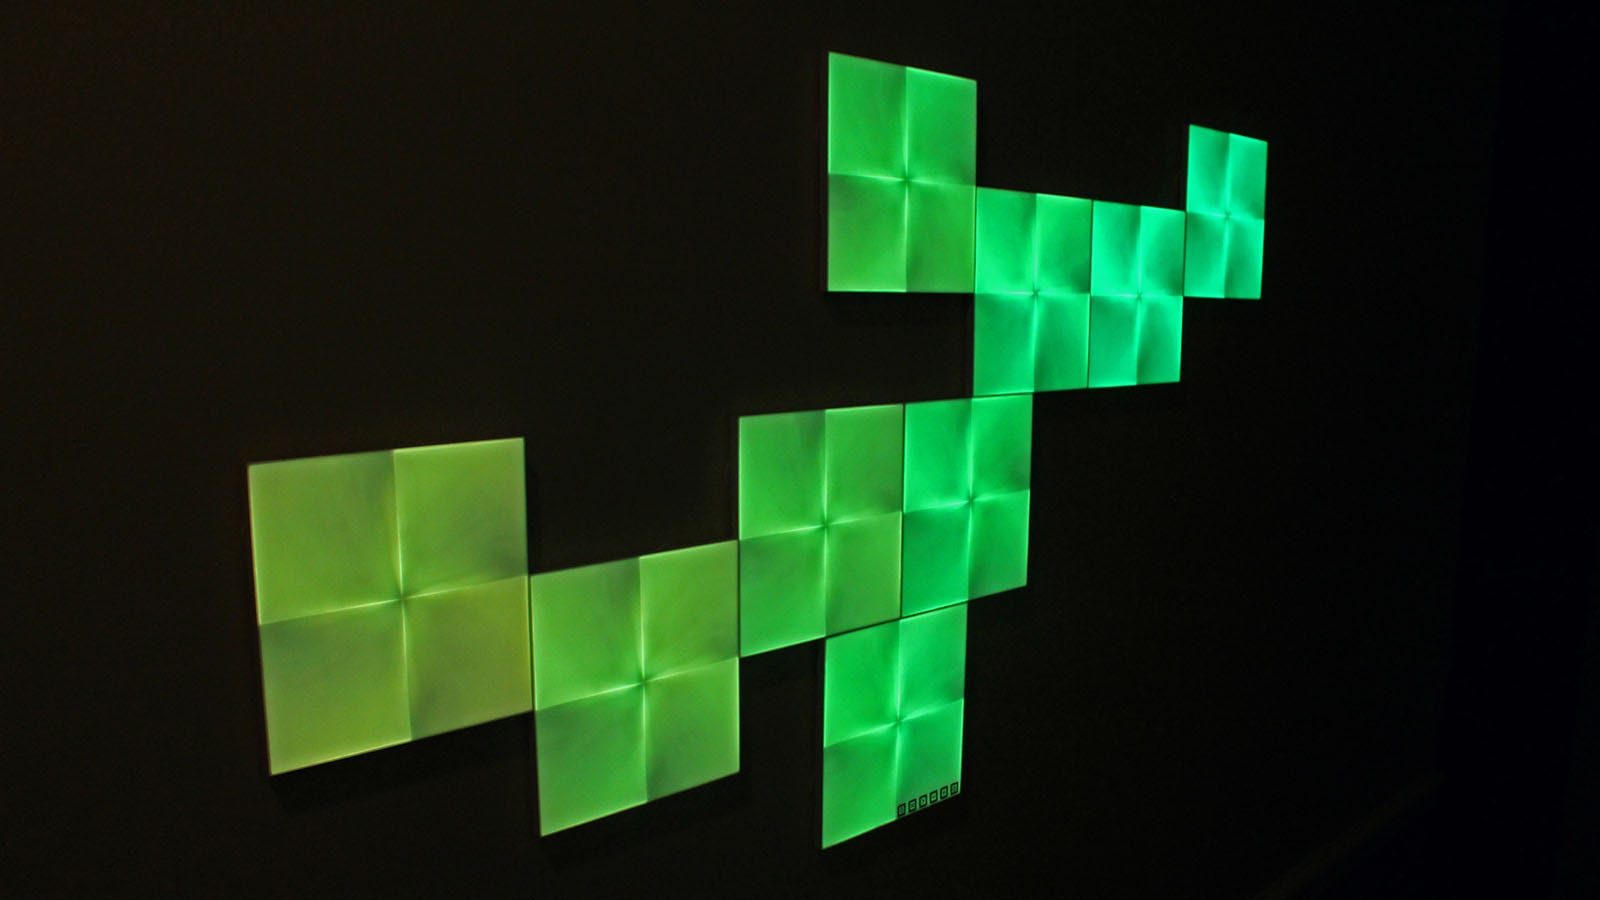 9 Nanoleaf panels showing sea green colors.